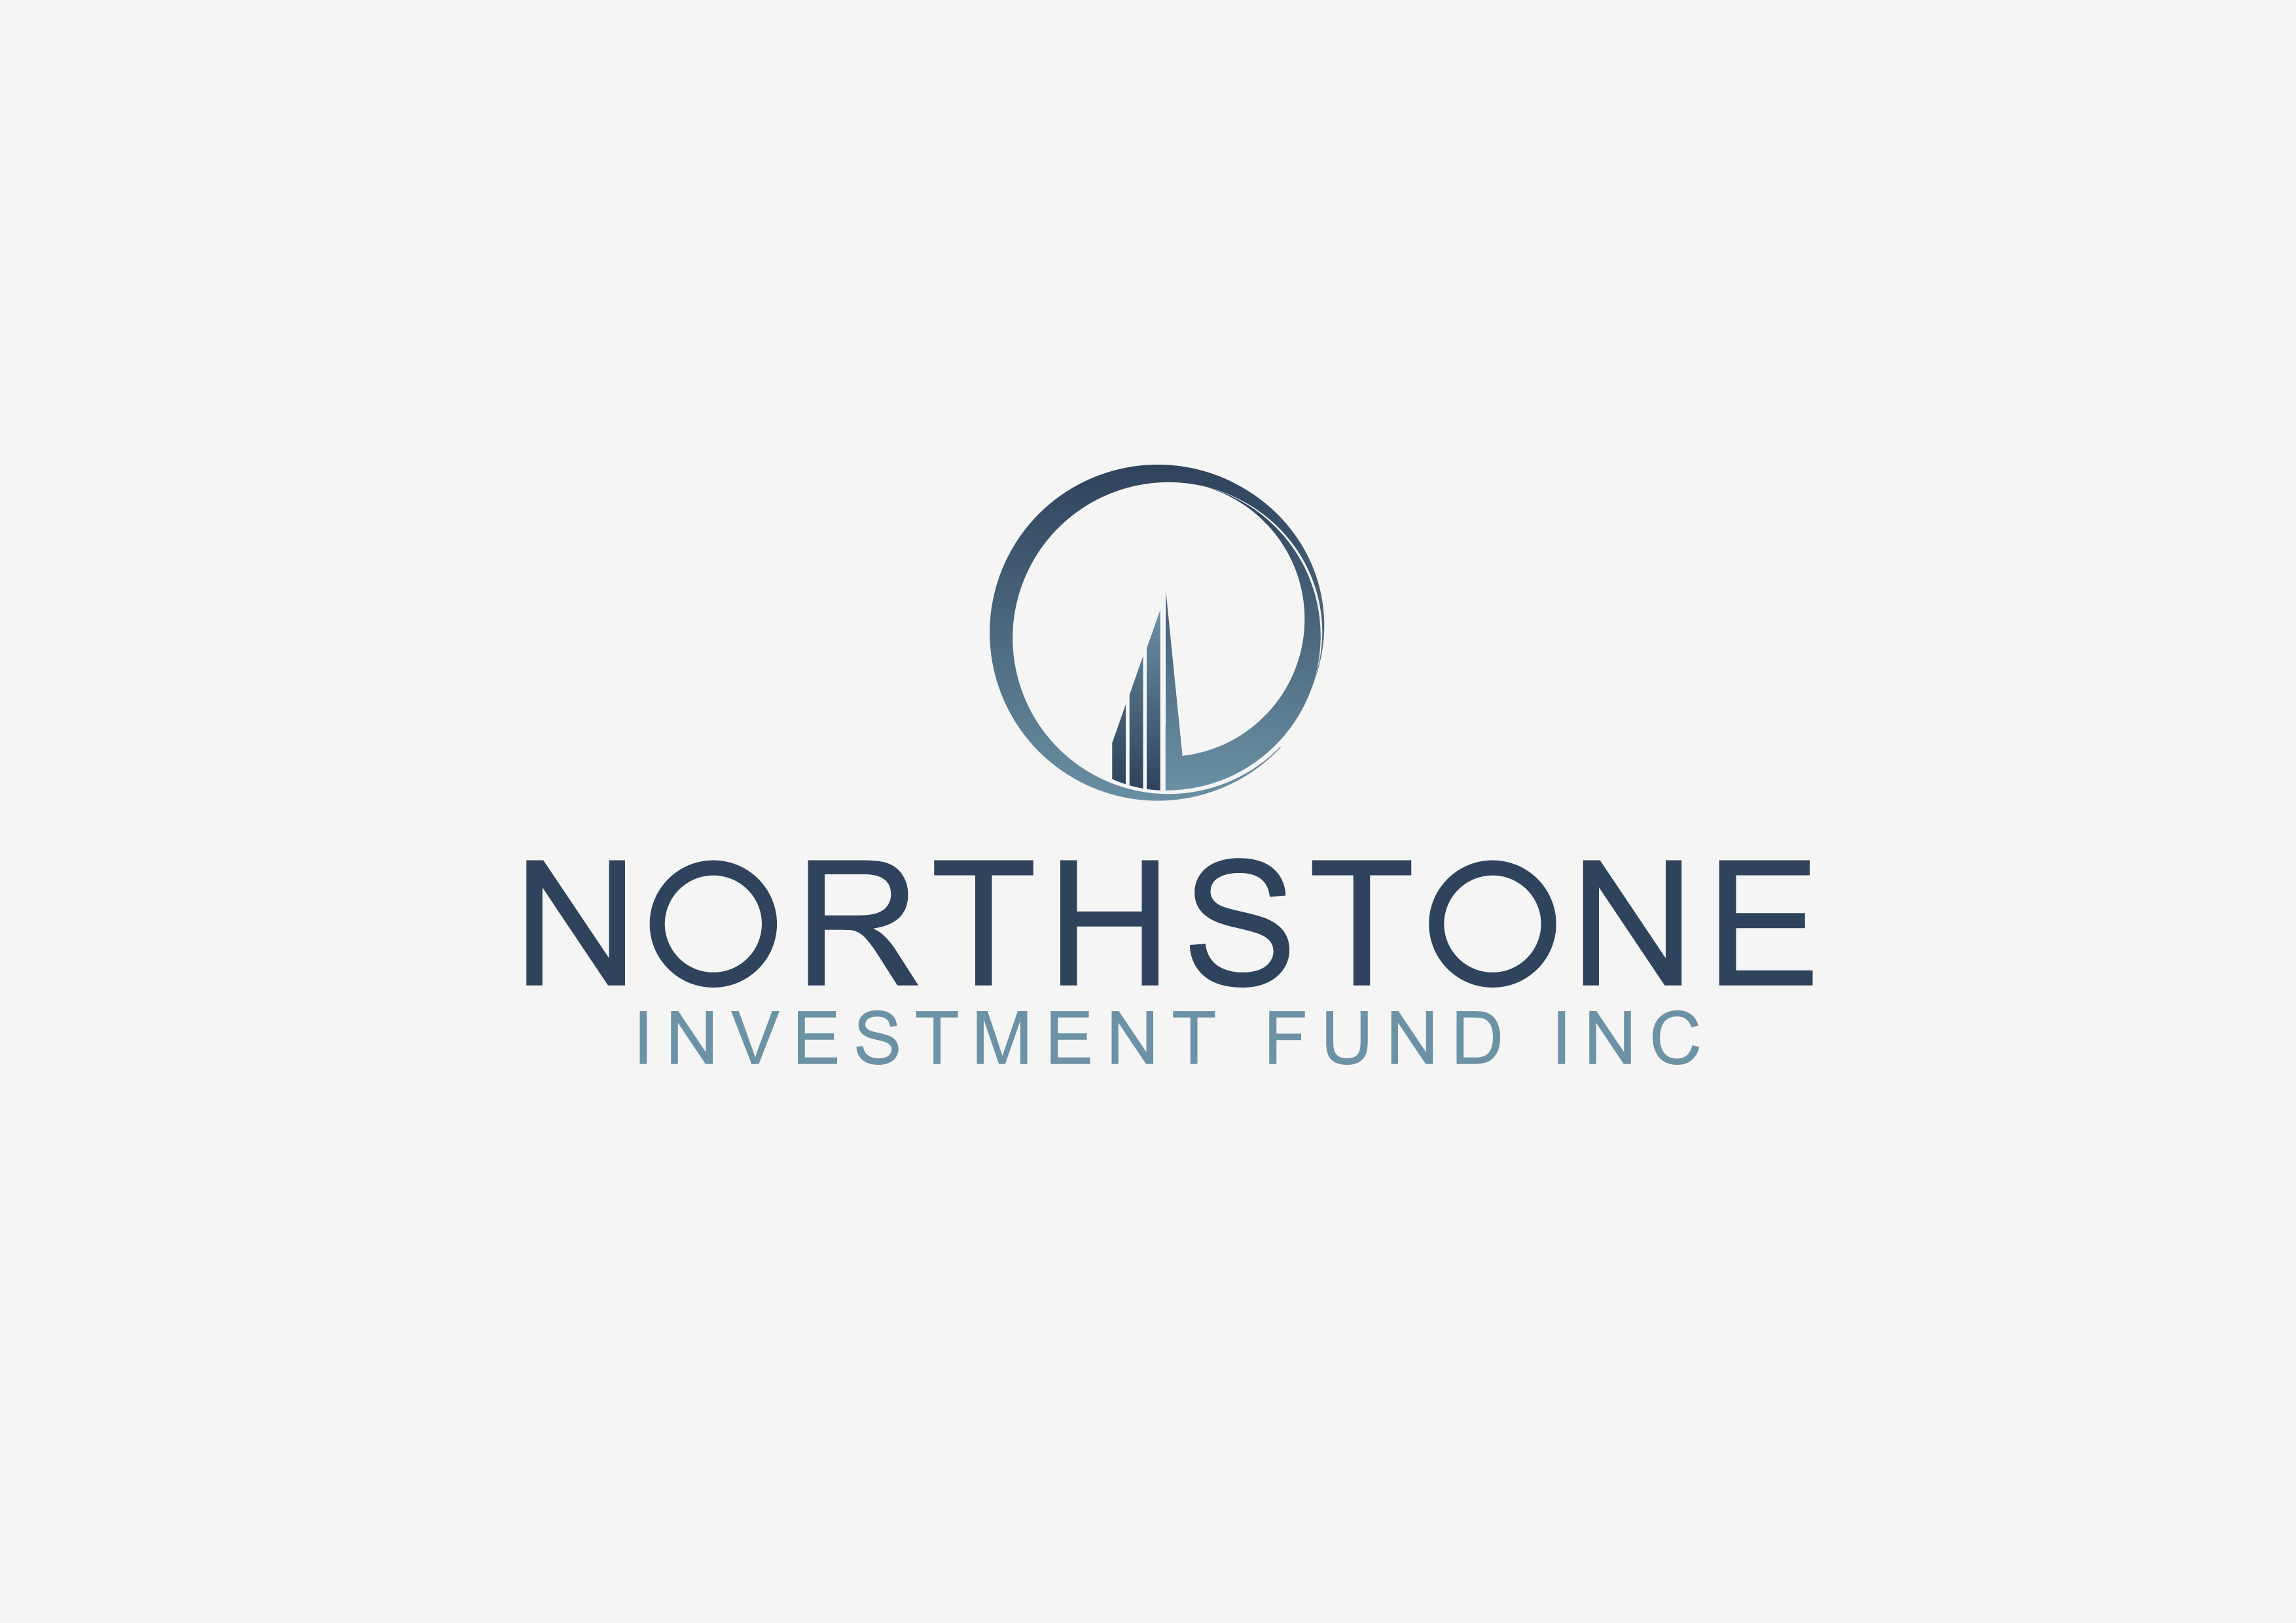 Logo Design by 3draw - Entry No. 236 in the Logo Design Contest Unique Logo Design Wanted for NorthStone Investment Fund Inc.